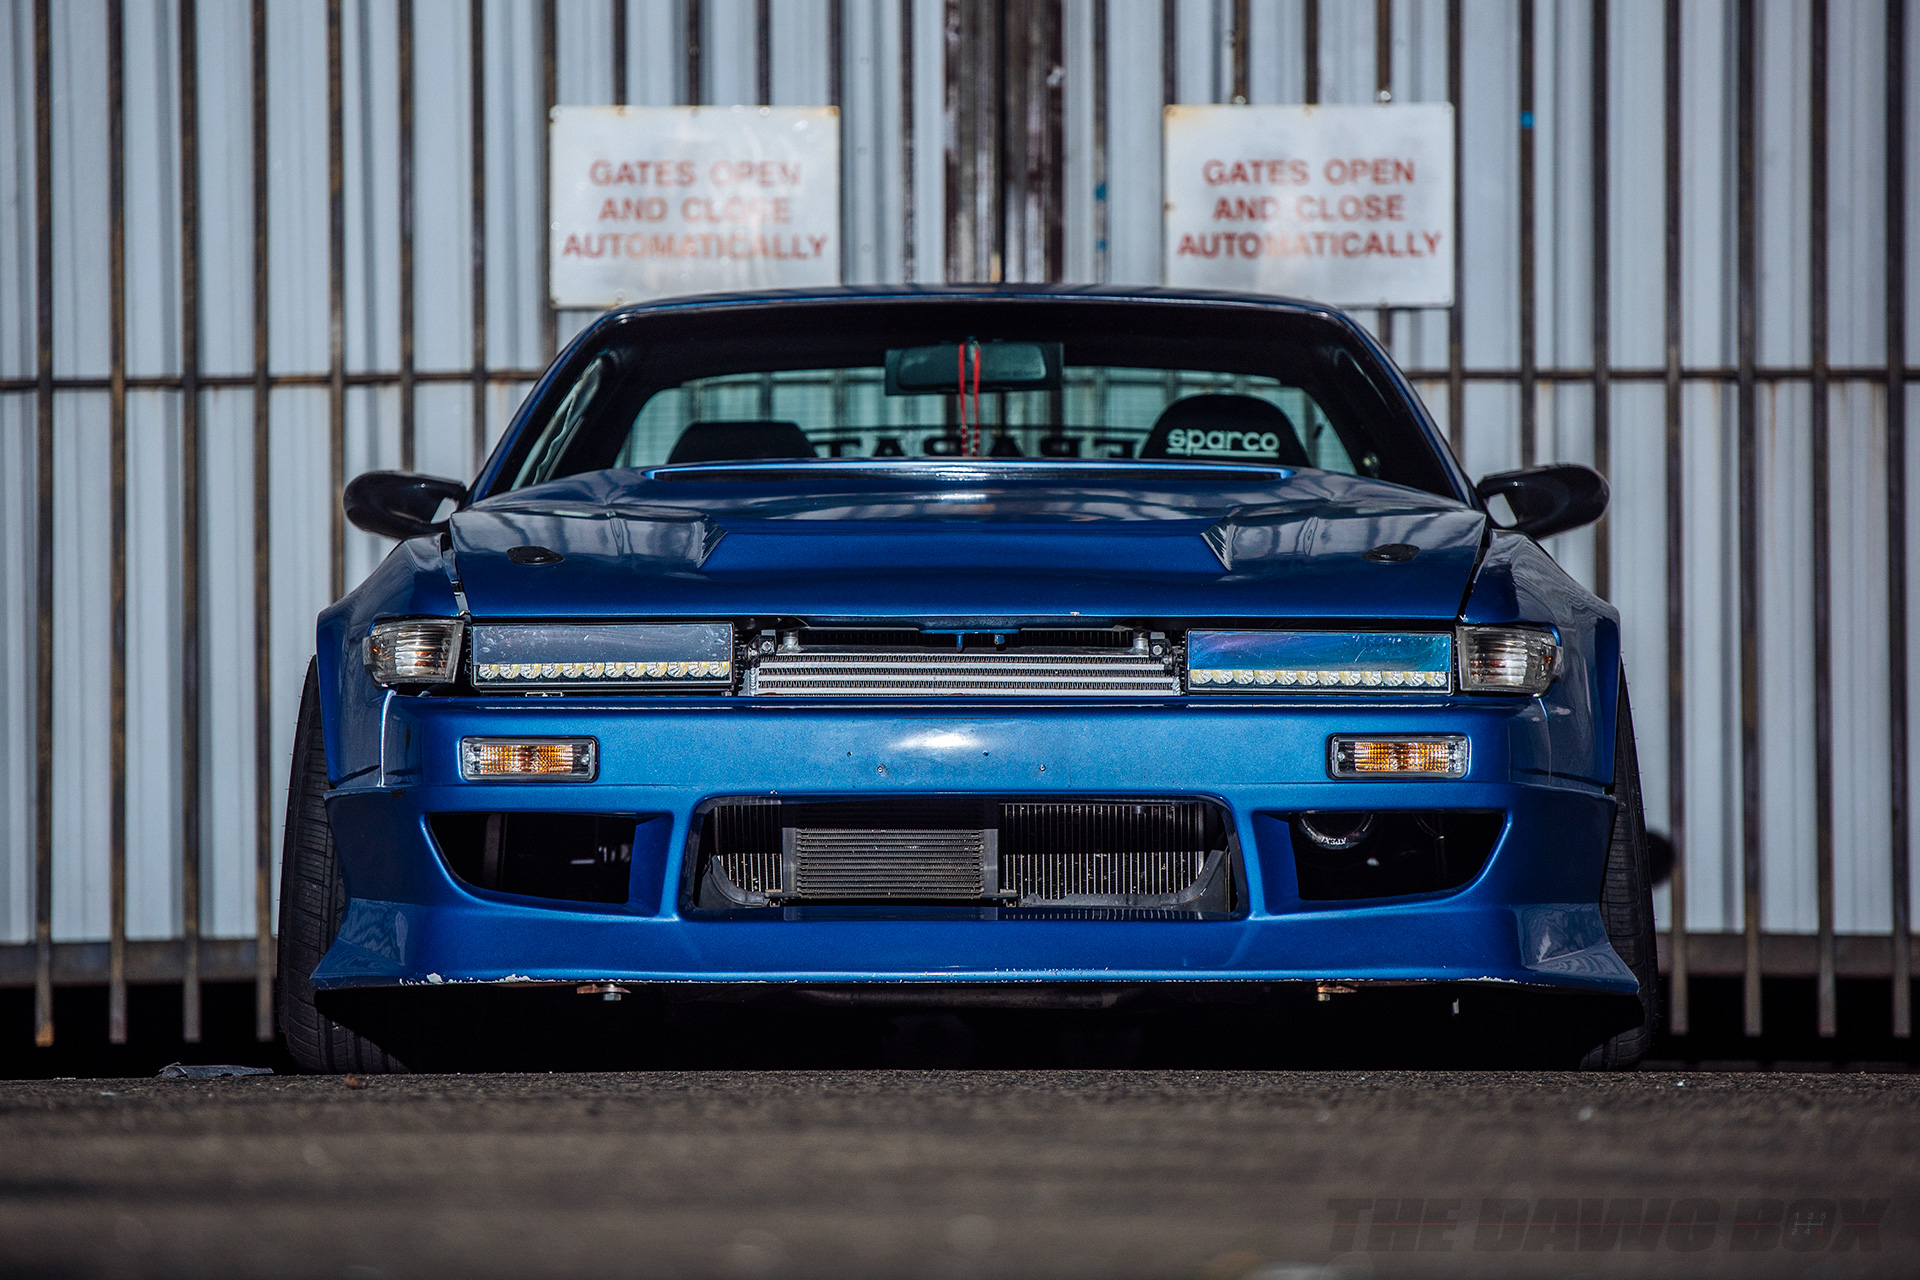 Blue Nissan 240SX S13 Silvia Coupe, Front Close-Up